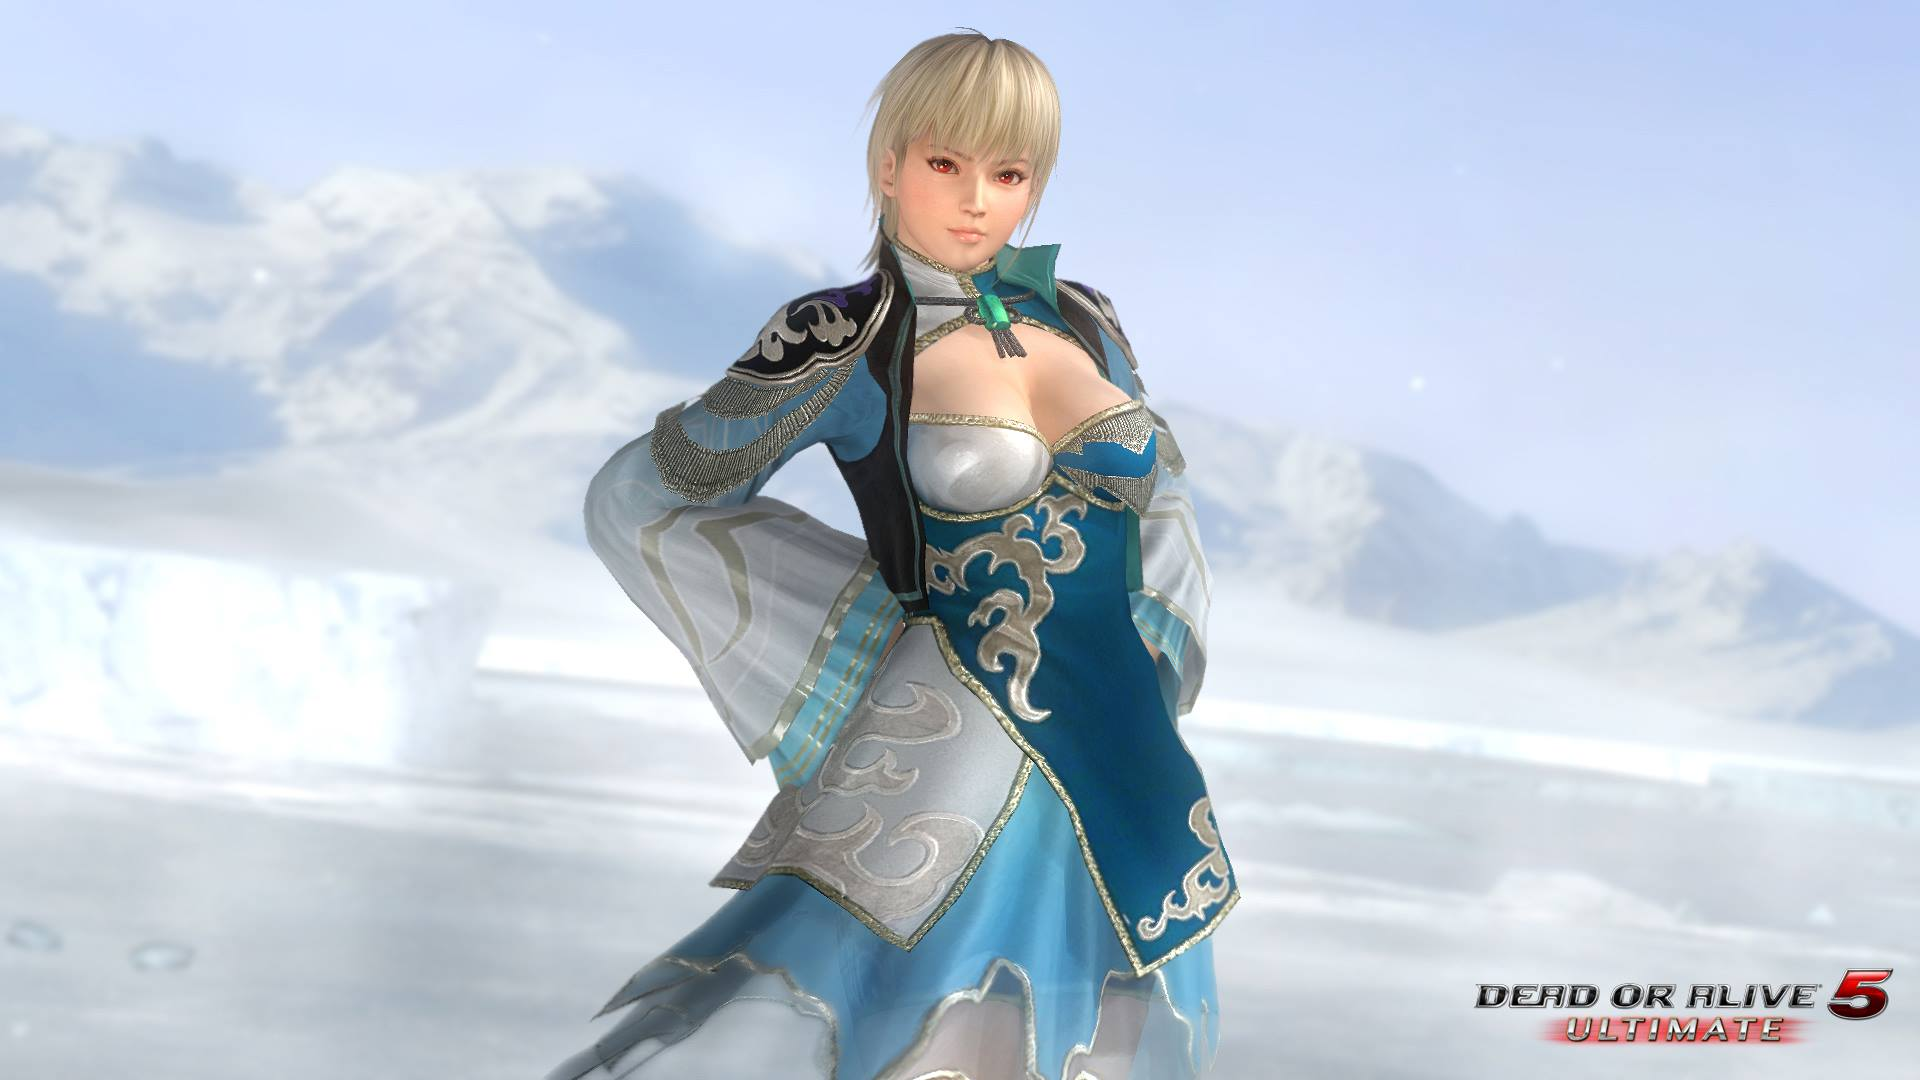 DLC Baru Dead Or Alive 5 Ultimate : Kostum Warriors Orochi 3